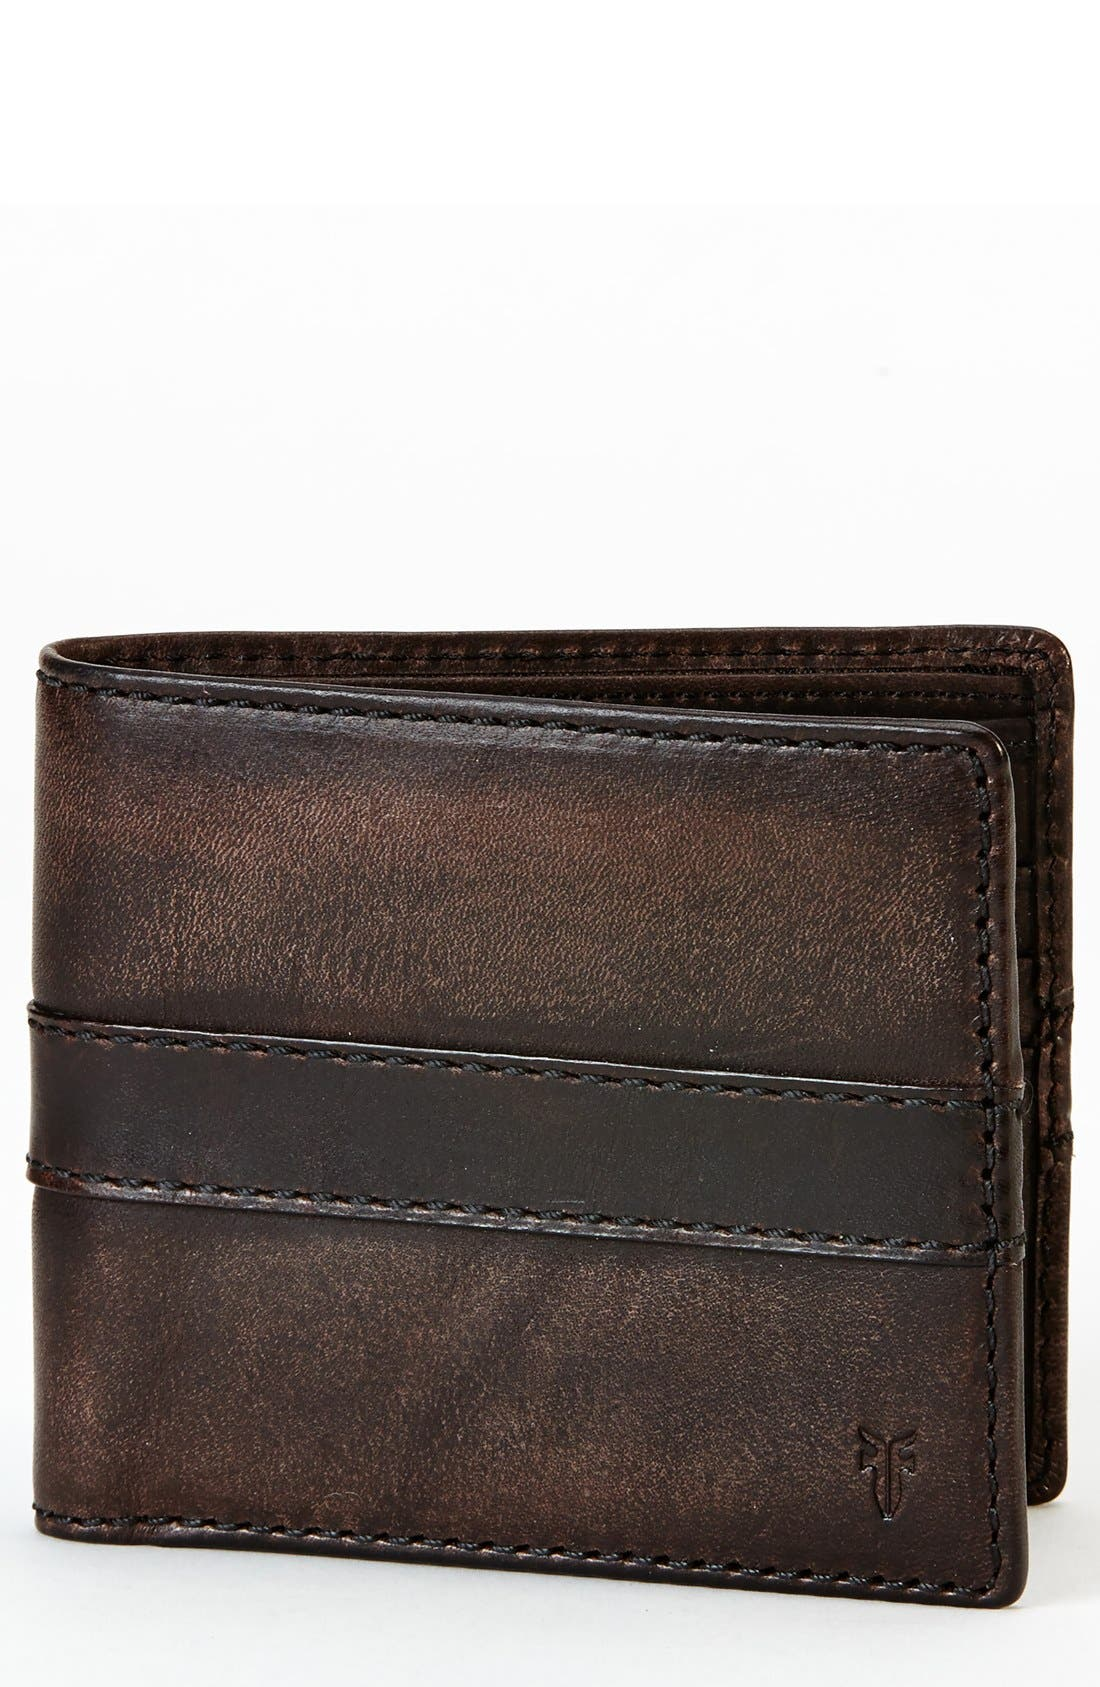 FRYE Oliver Leather Billfold Wallet